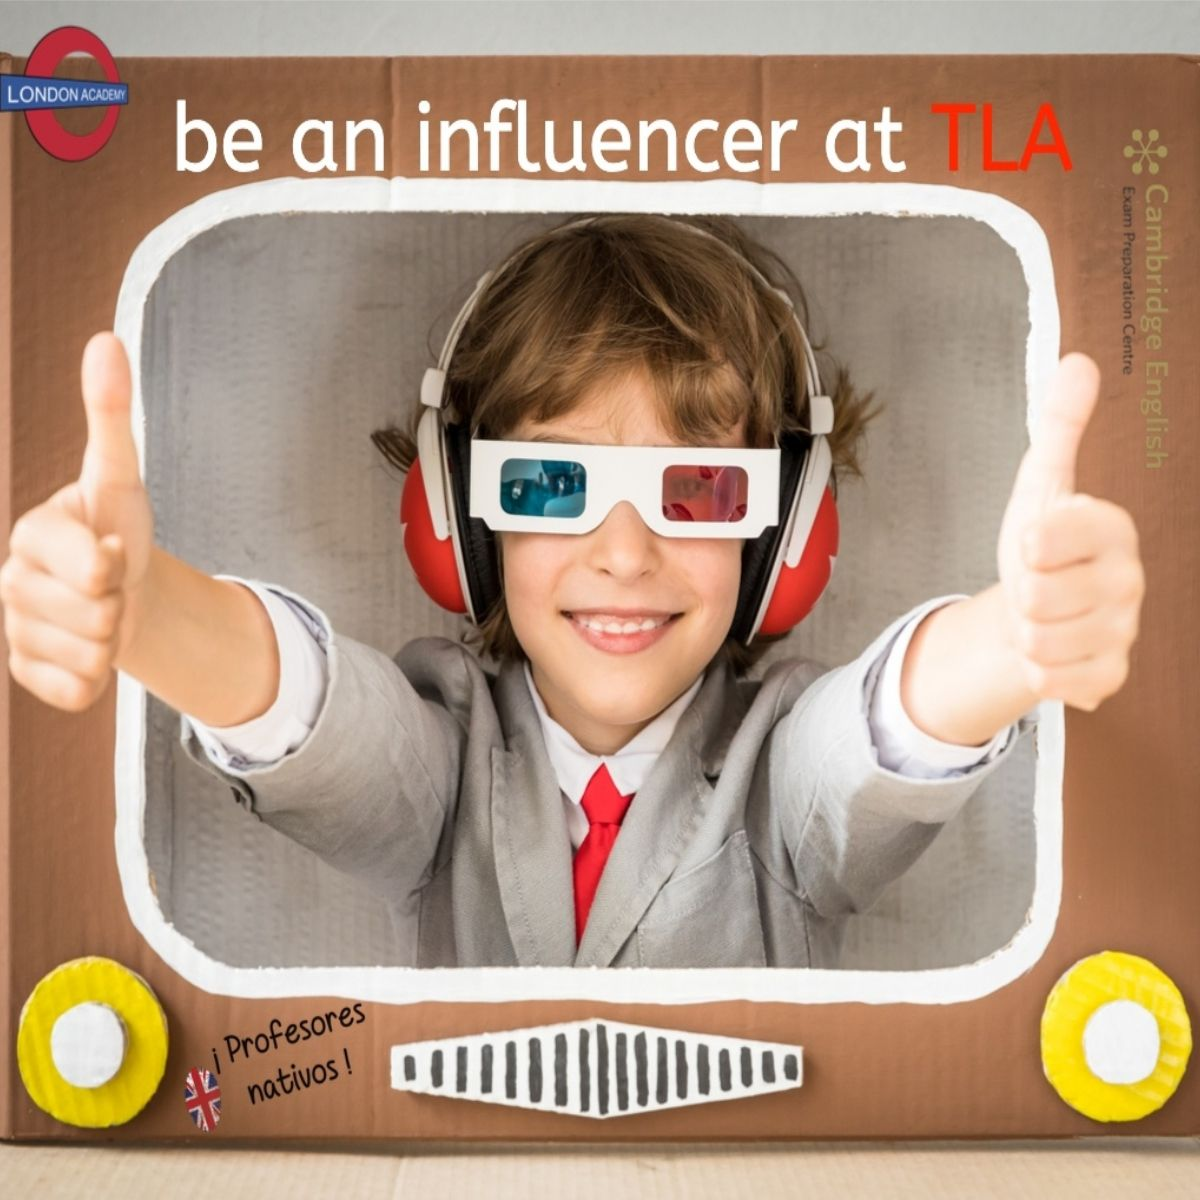 Be an influencer 1200x1200